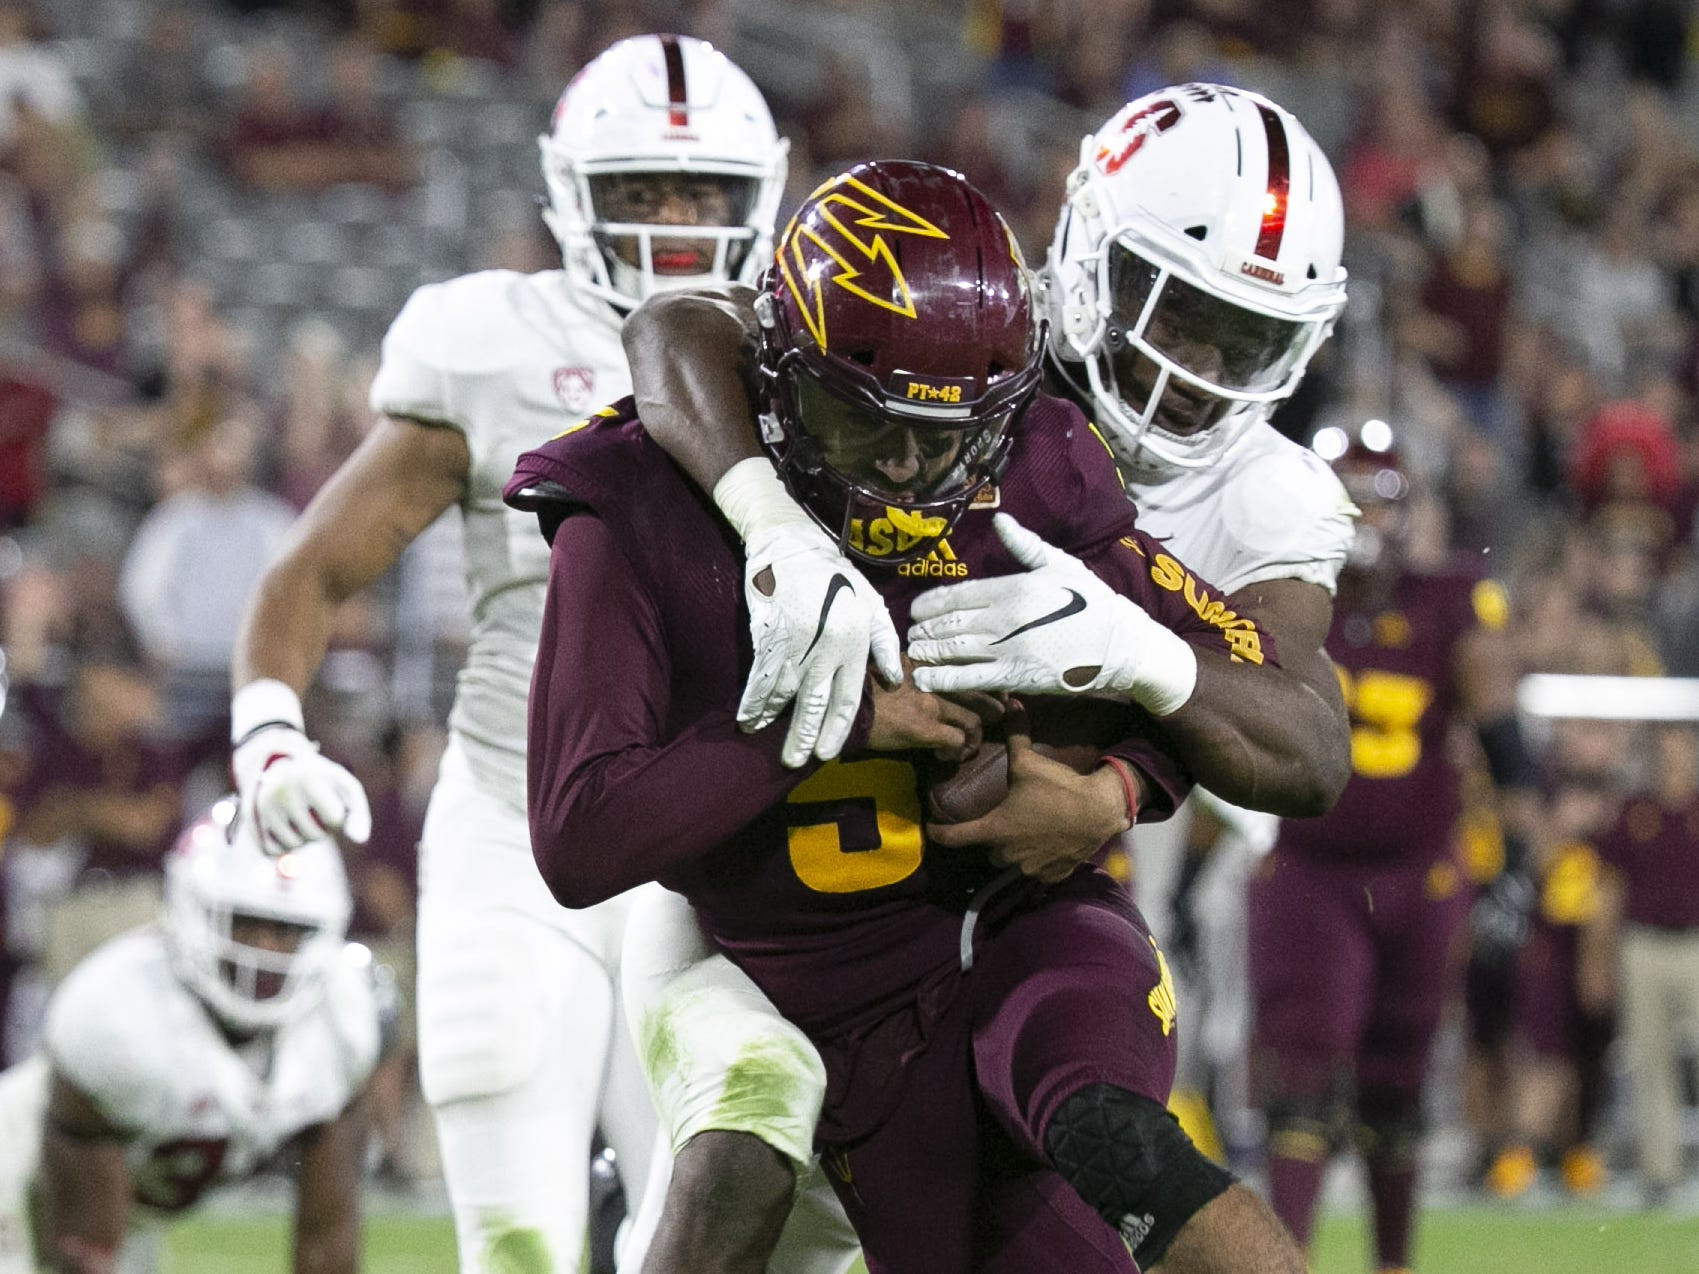 ASU quarterback Manny Wilkins scores a touchdown on the run as Stanford linebacker Bobby Okereke attempts the tackle during the  fourth quarter of the Pac-12 college football game at Sun Devil Stadium in Tempe on October 18, 2018.